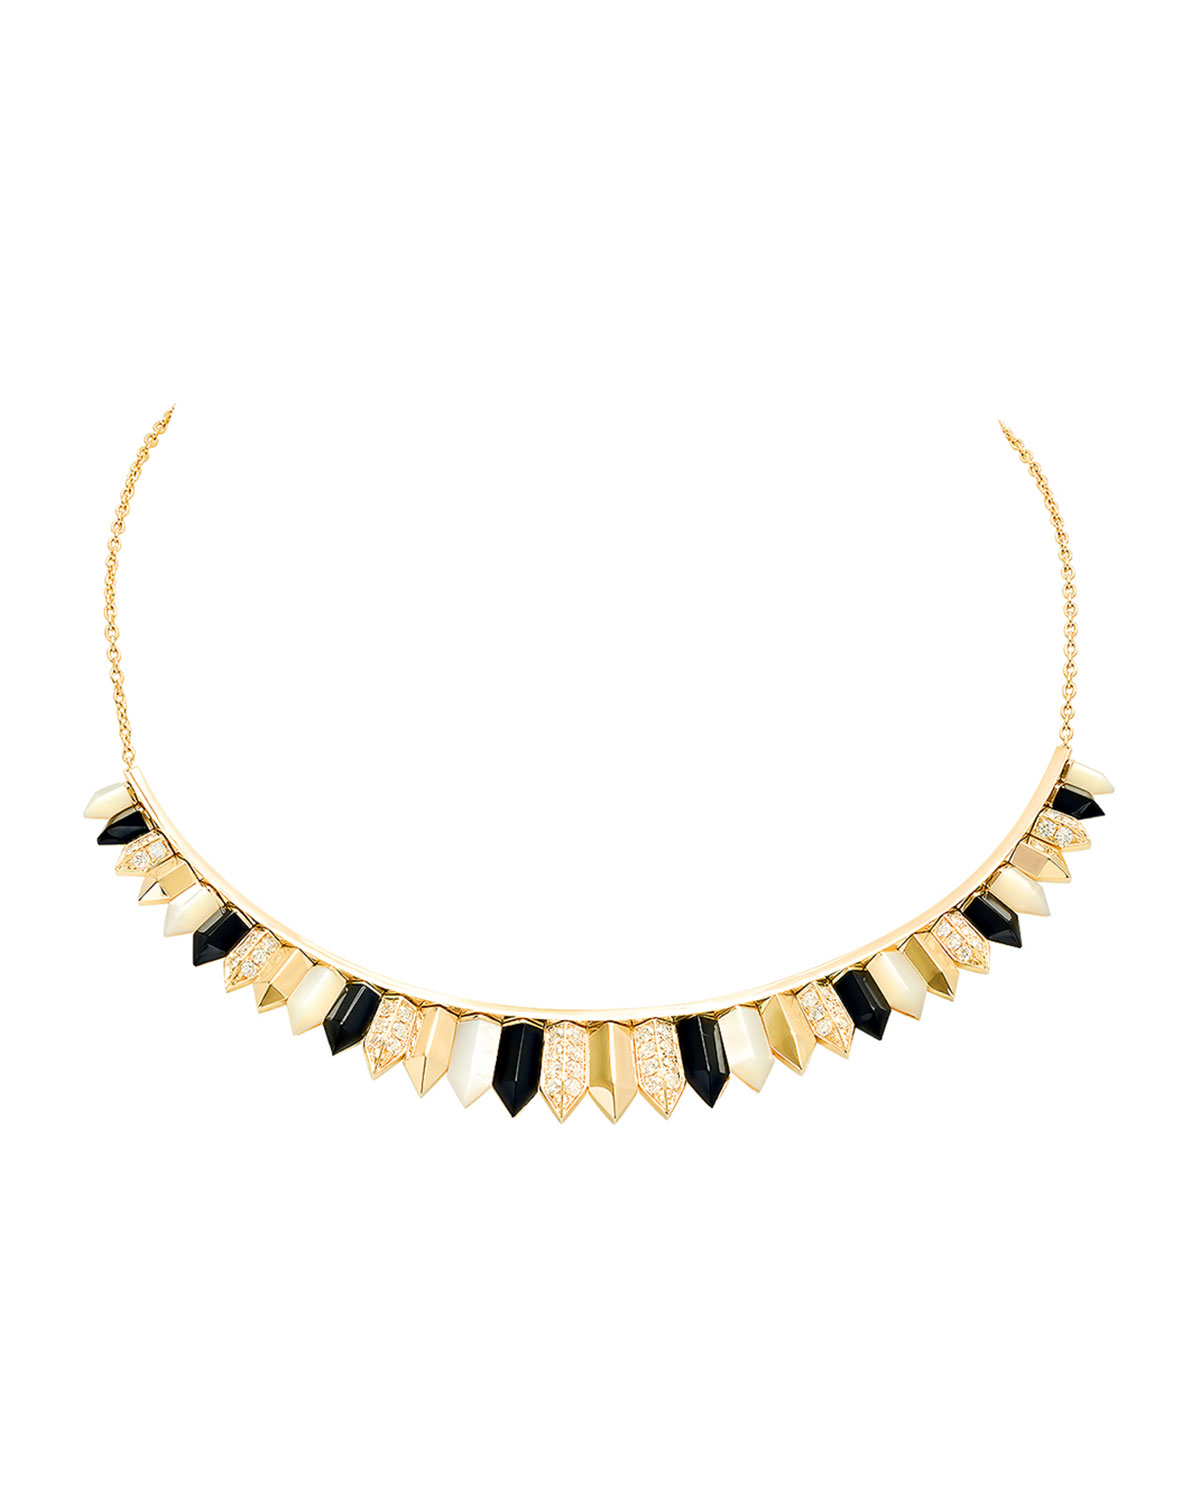 18K Yellow Gold Penacho Necklace in Mother-of-Pearl and Onyx